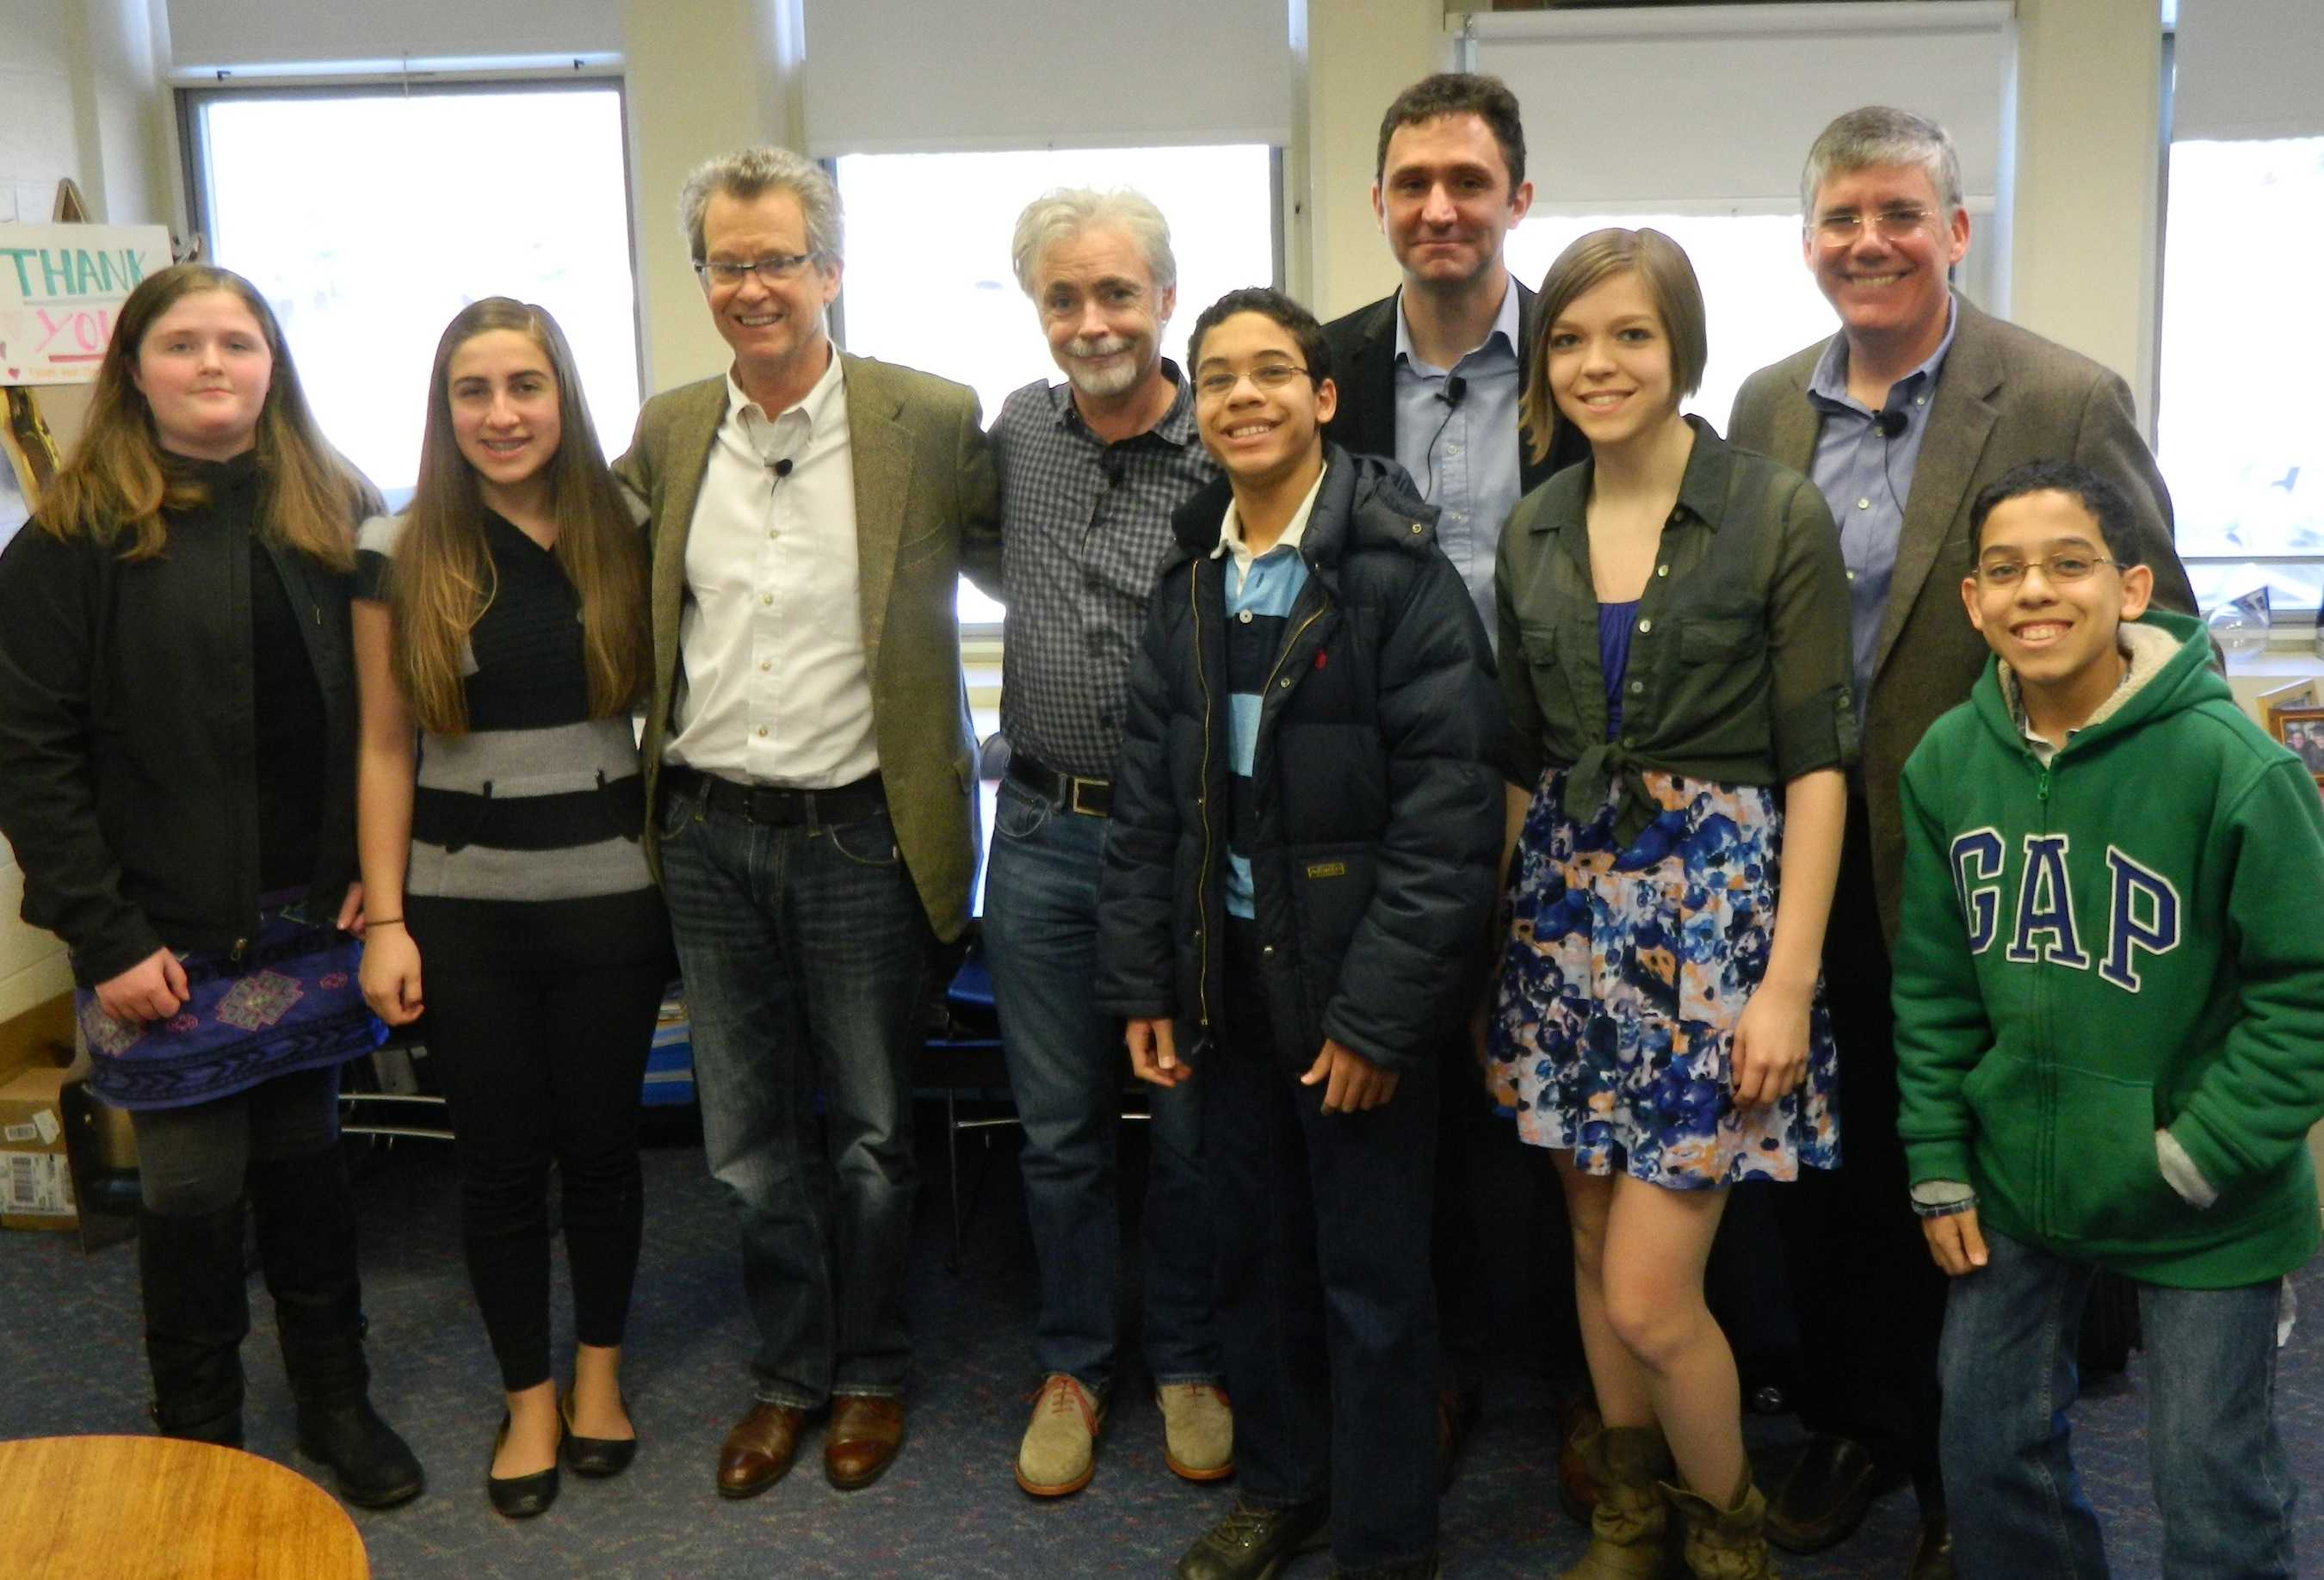 Authors (back row, right to left), Rick Riordan, Jonathan Stroud, Eoin Colfer,and Ridley Pearson pose with student reporters from the Watertown Public Schools at the one-time-only